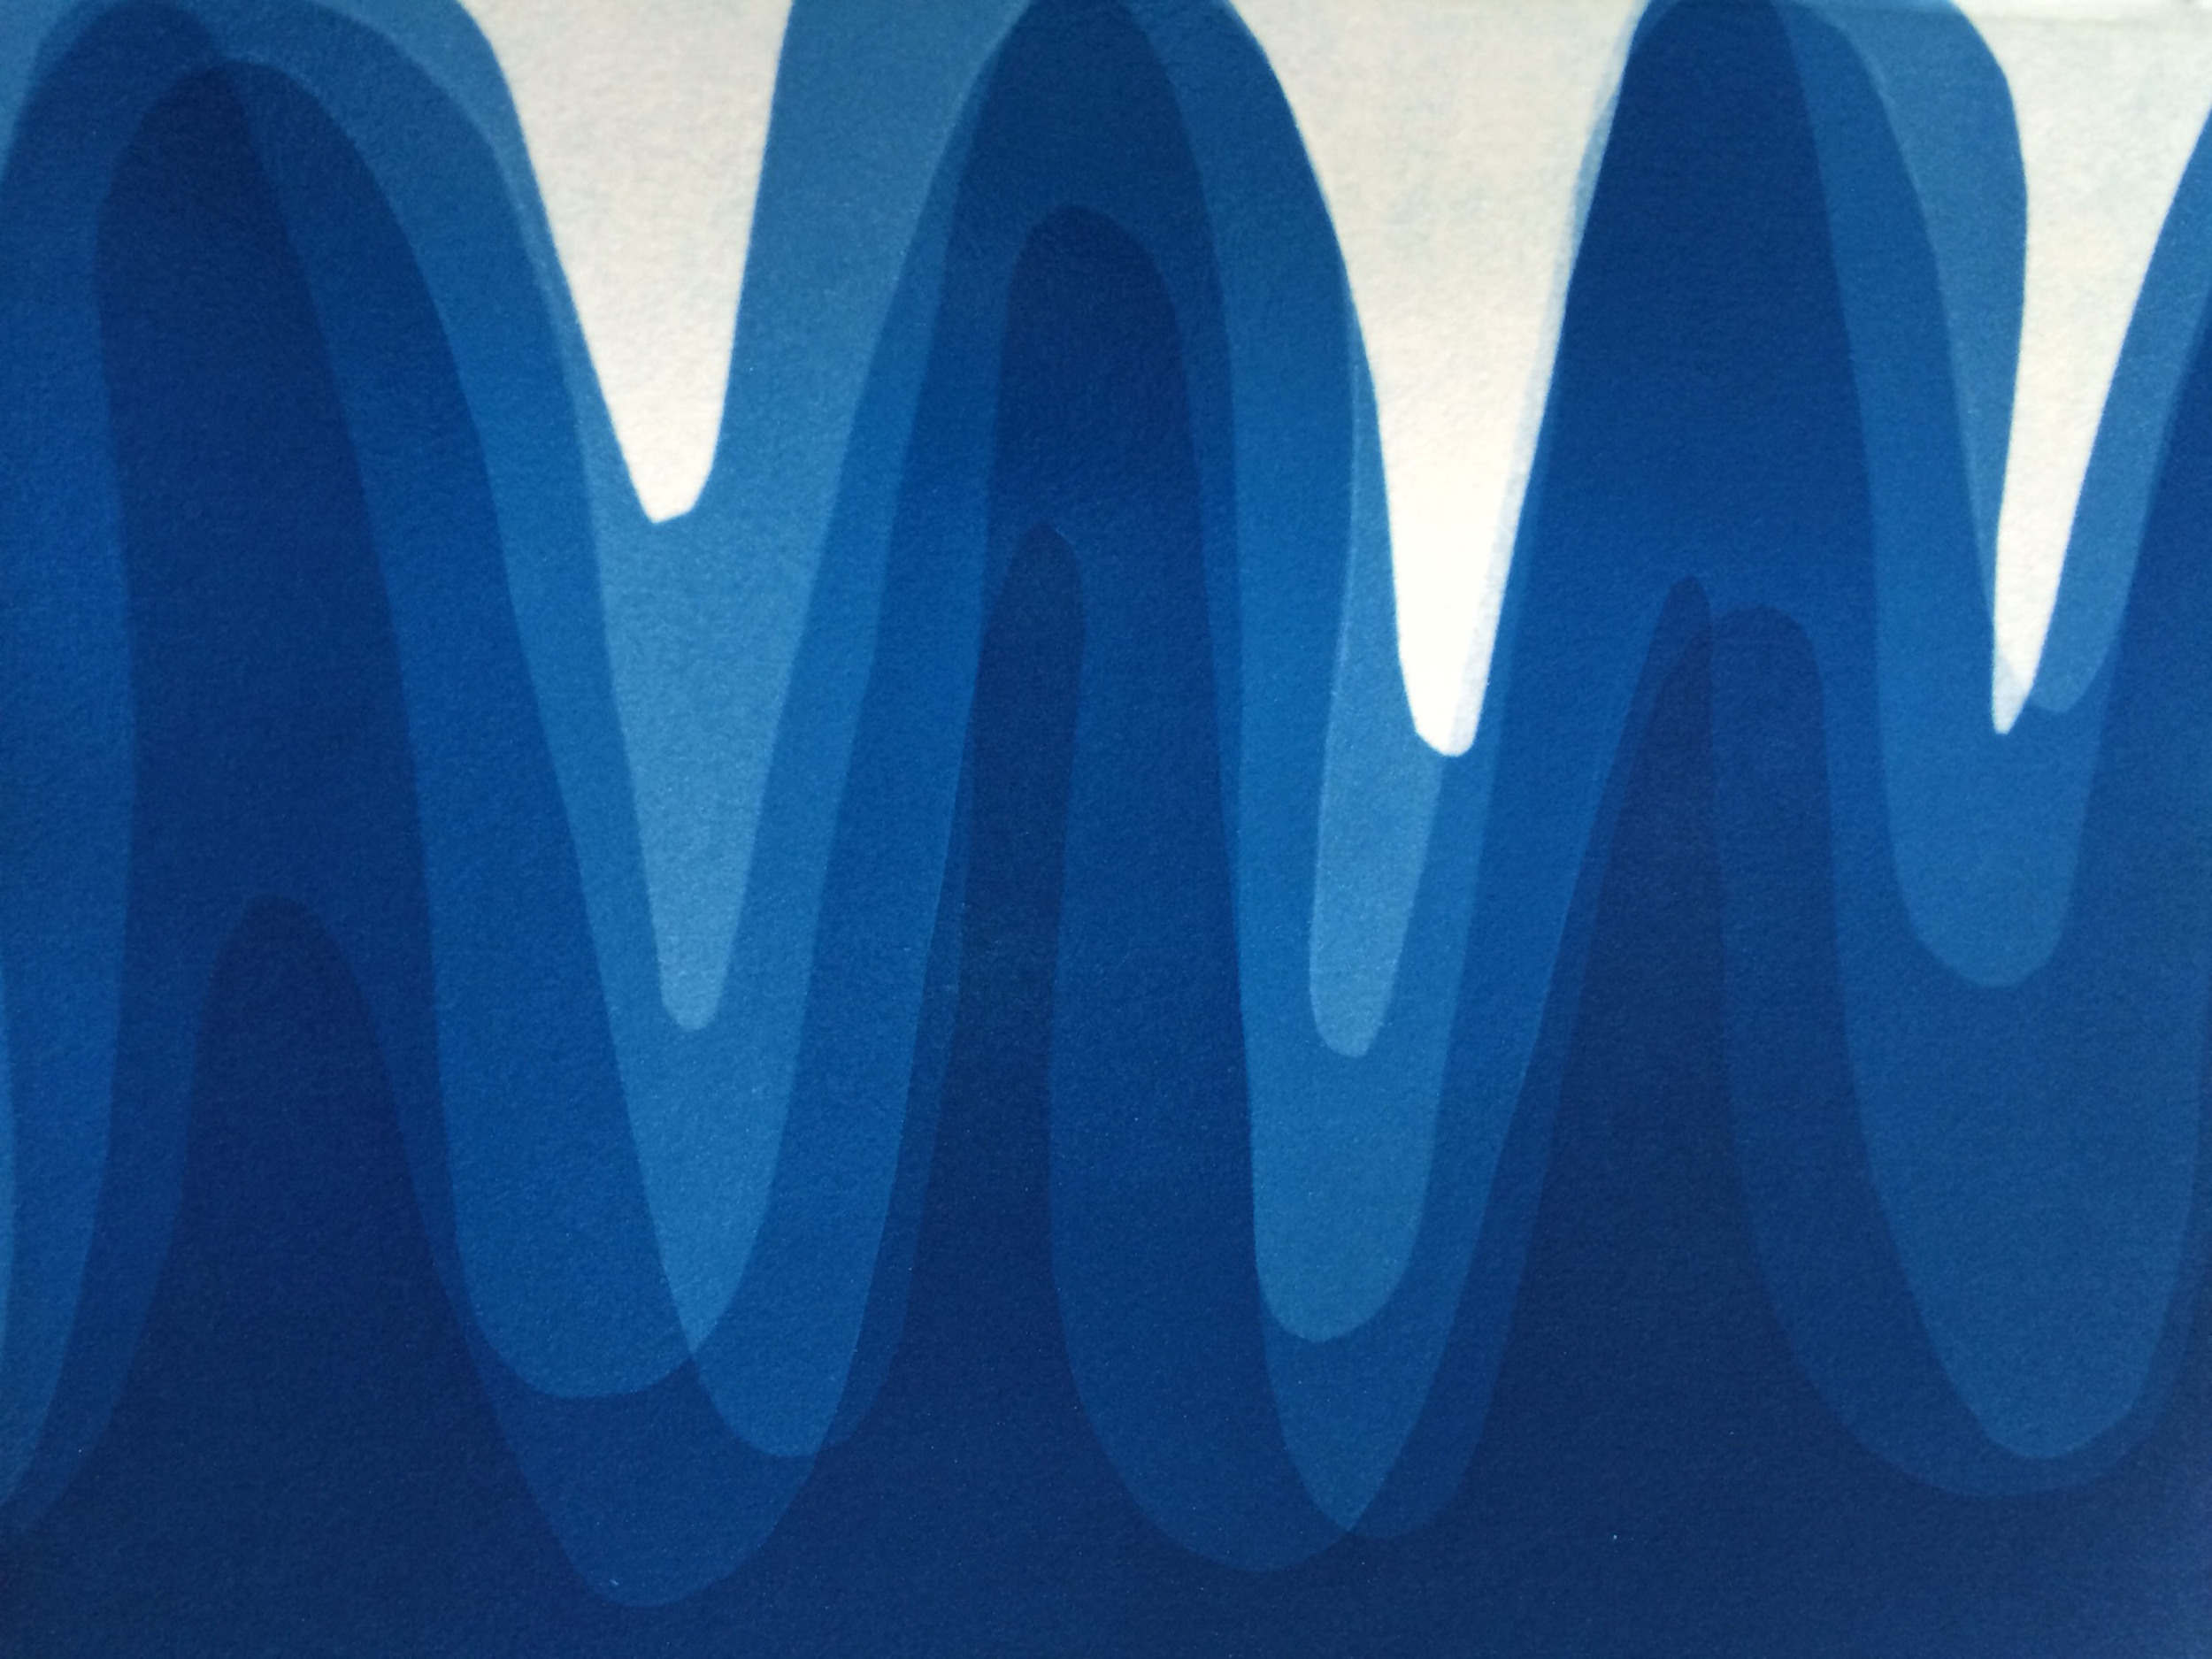 Waves I , 2014, Cyanotype on Arches paper, 12 x 15 inches